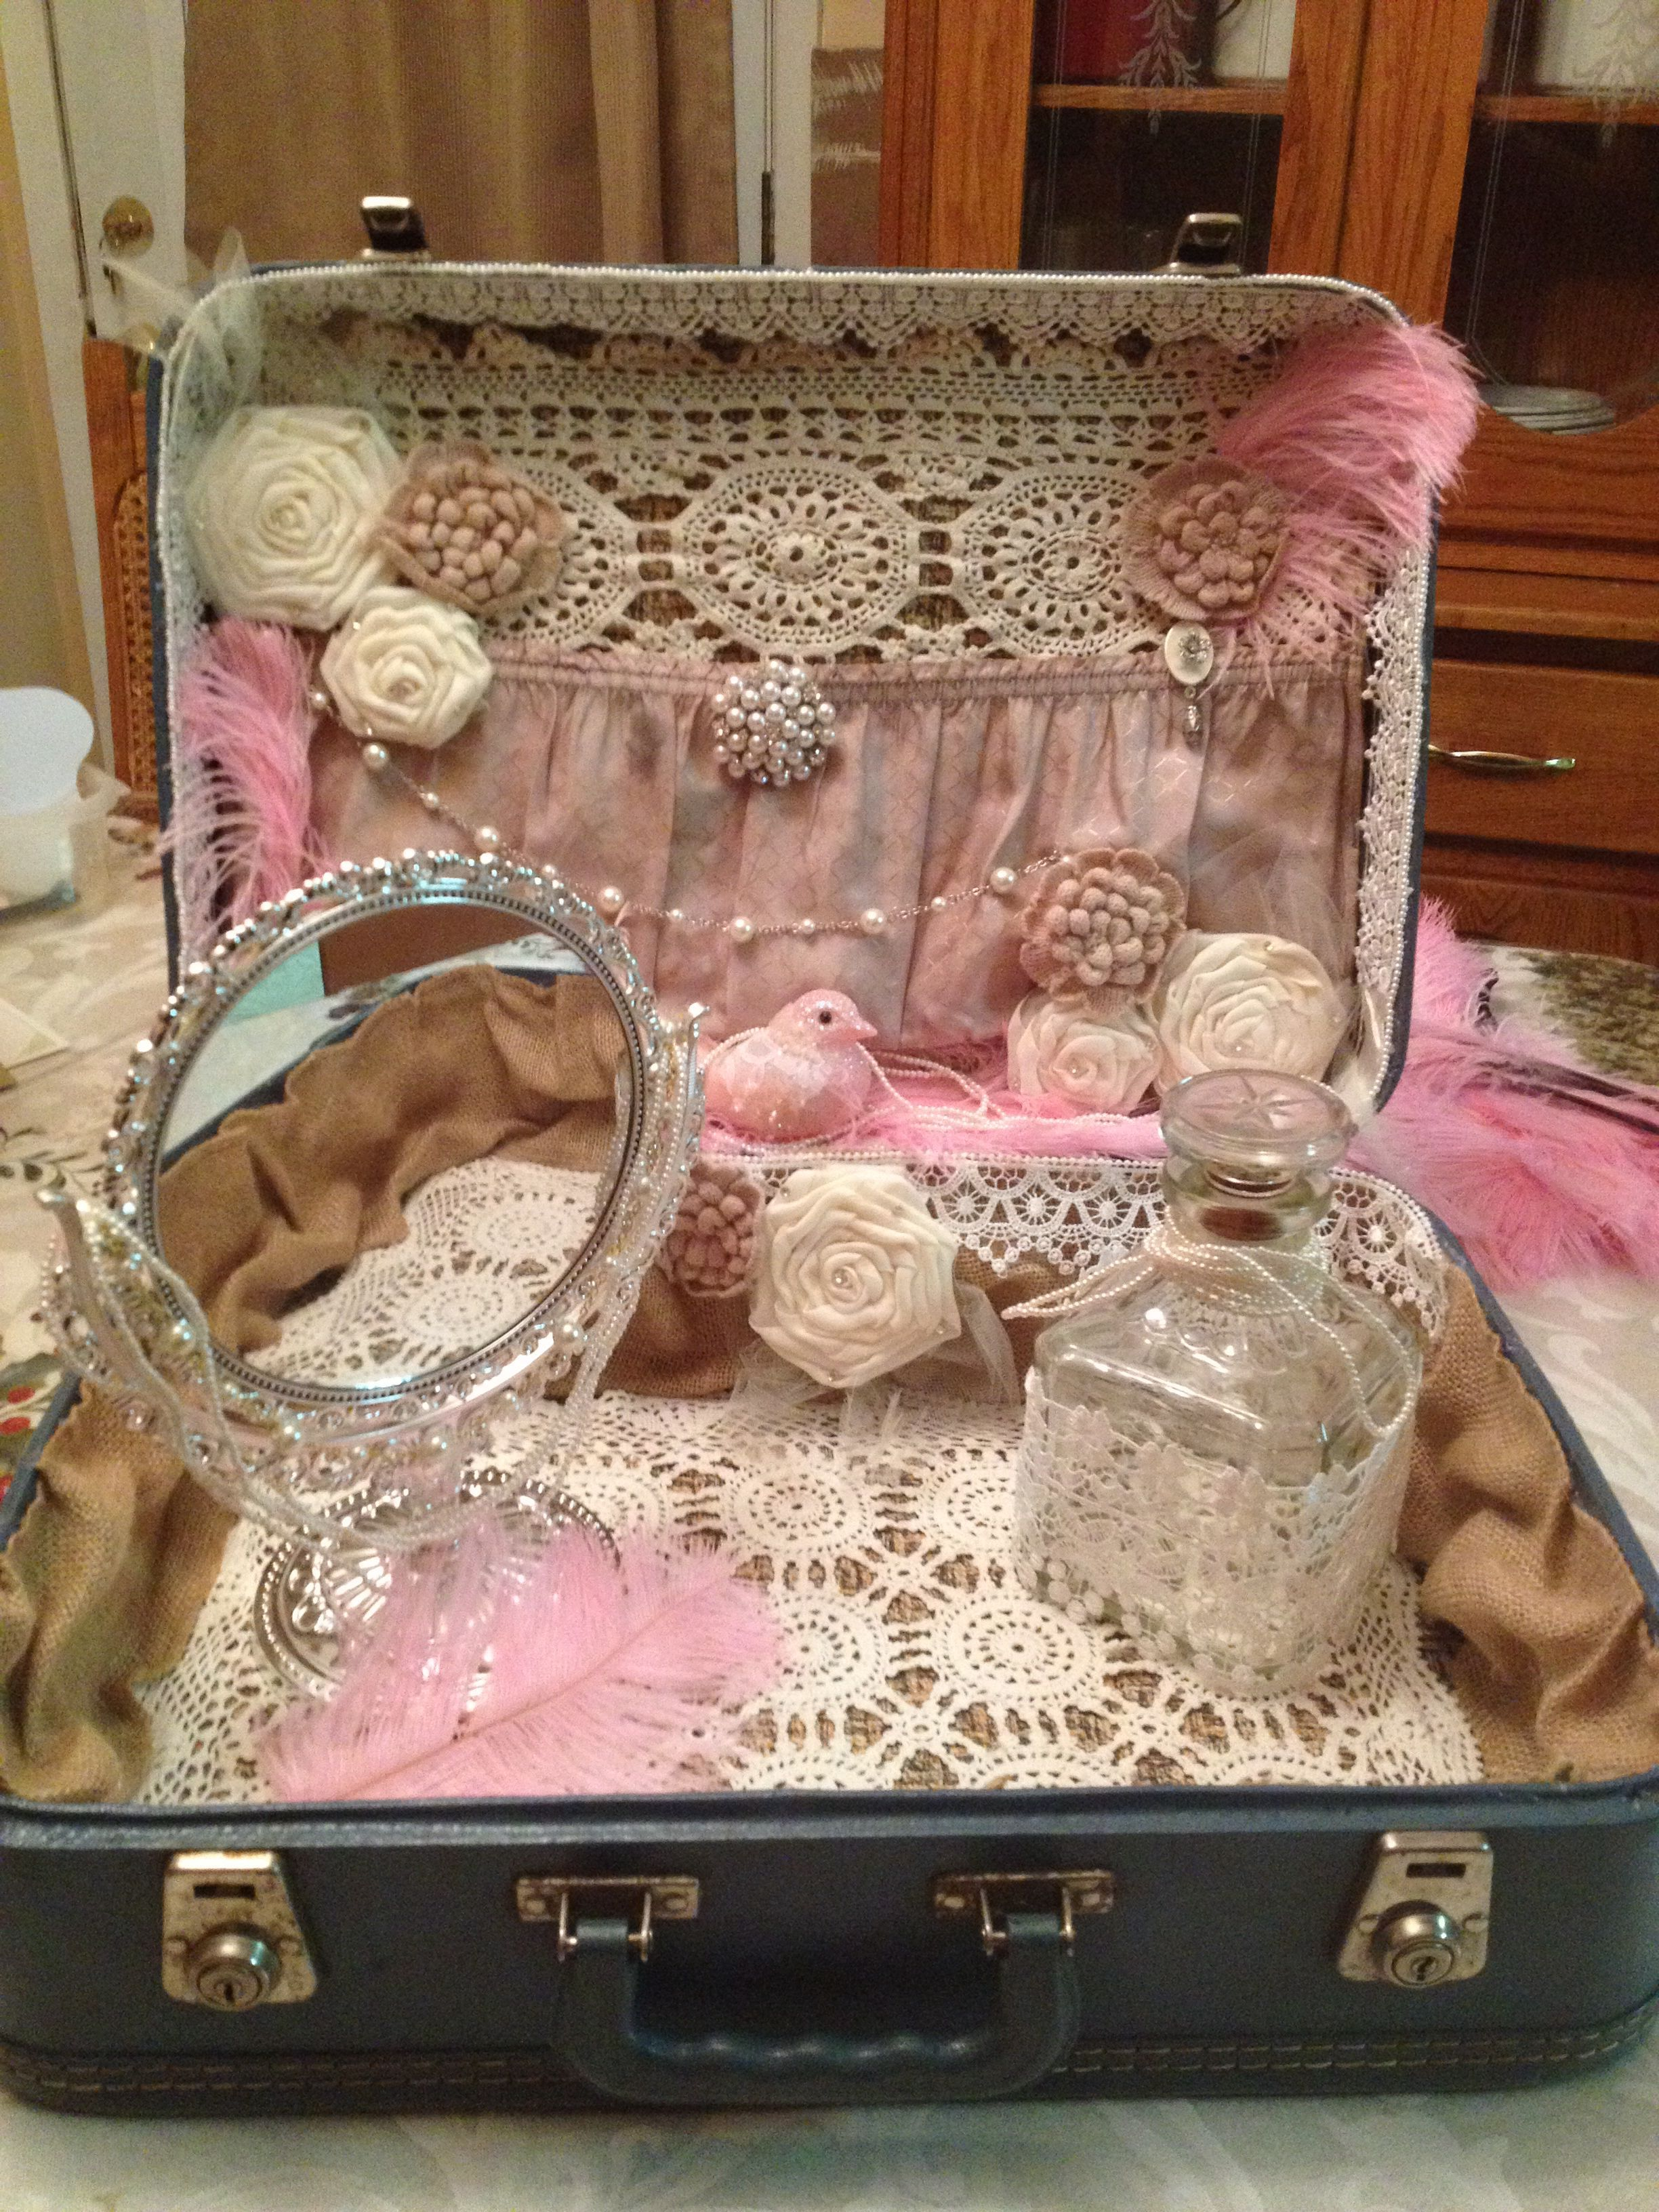 Vintage Suitcase Wedding Decor / www.fantasycreationsinvites.com #vintagesuitcasewedding Vintage Suitcase Wedding Decor / www.fantasycreationsinvites.com #vintagesuitcasewedding